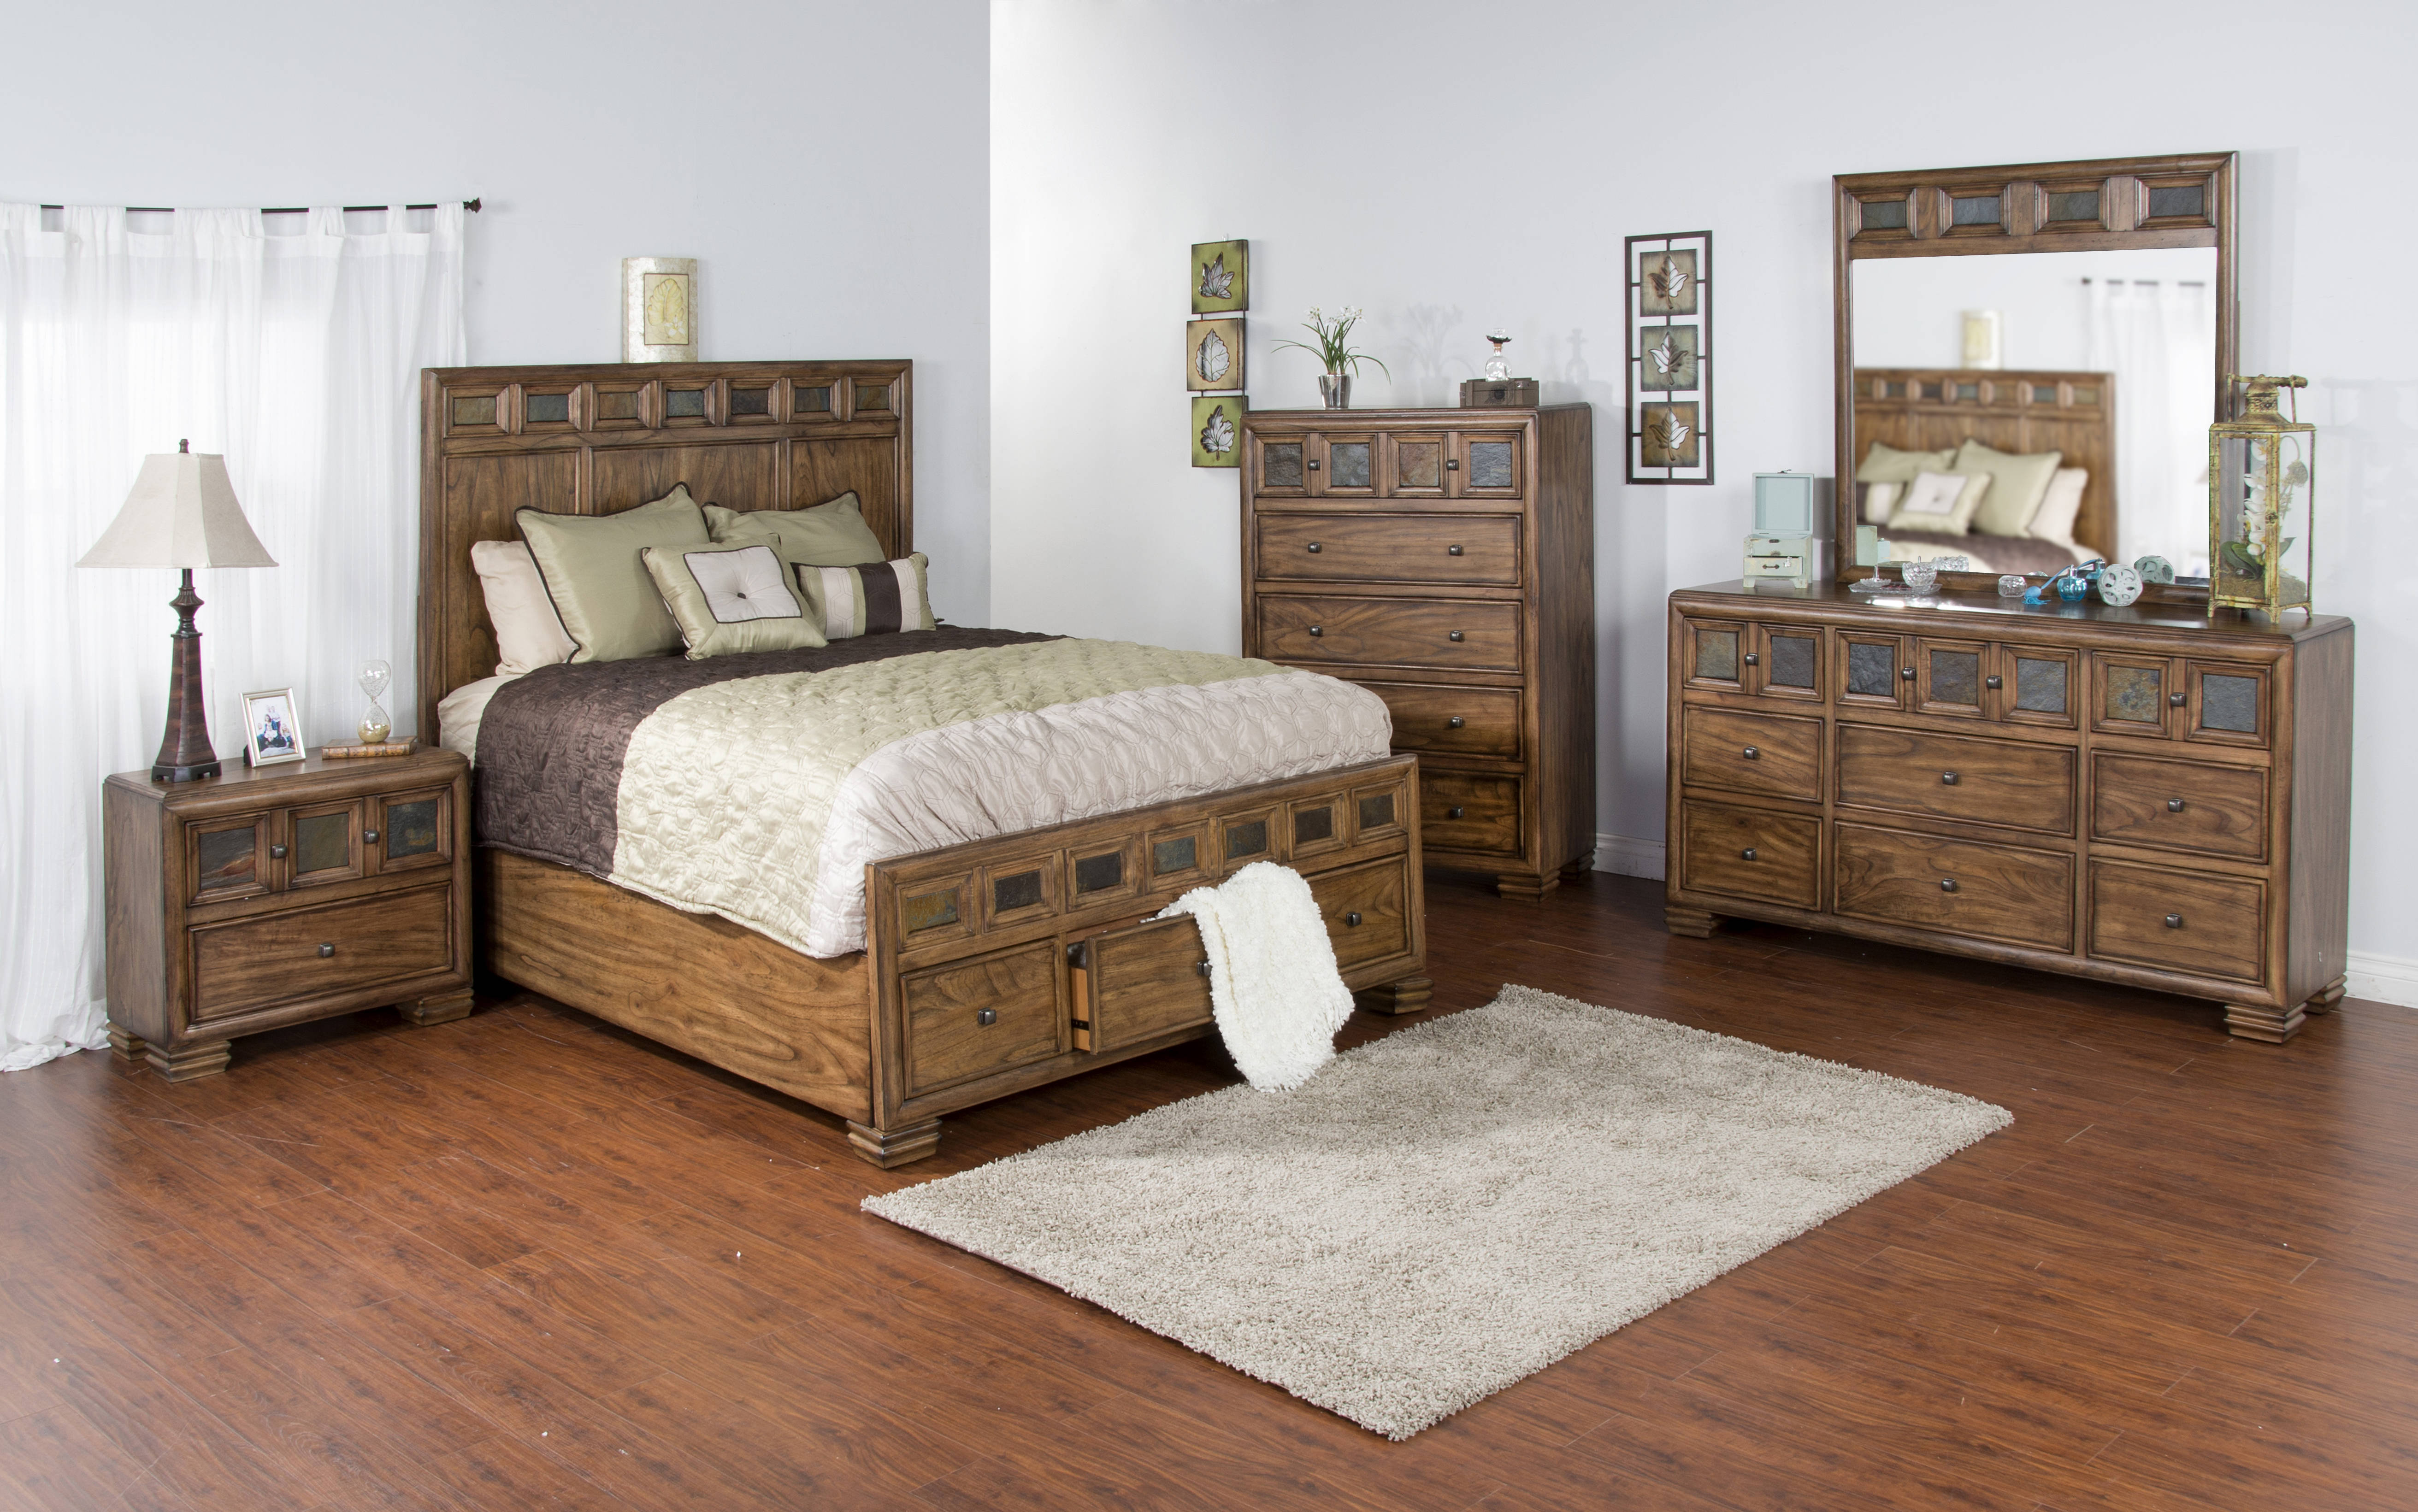 Coventry Wood Storage Master Bedroom Set The Classy Home The Classy Home Best Deal Furniture